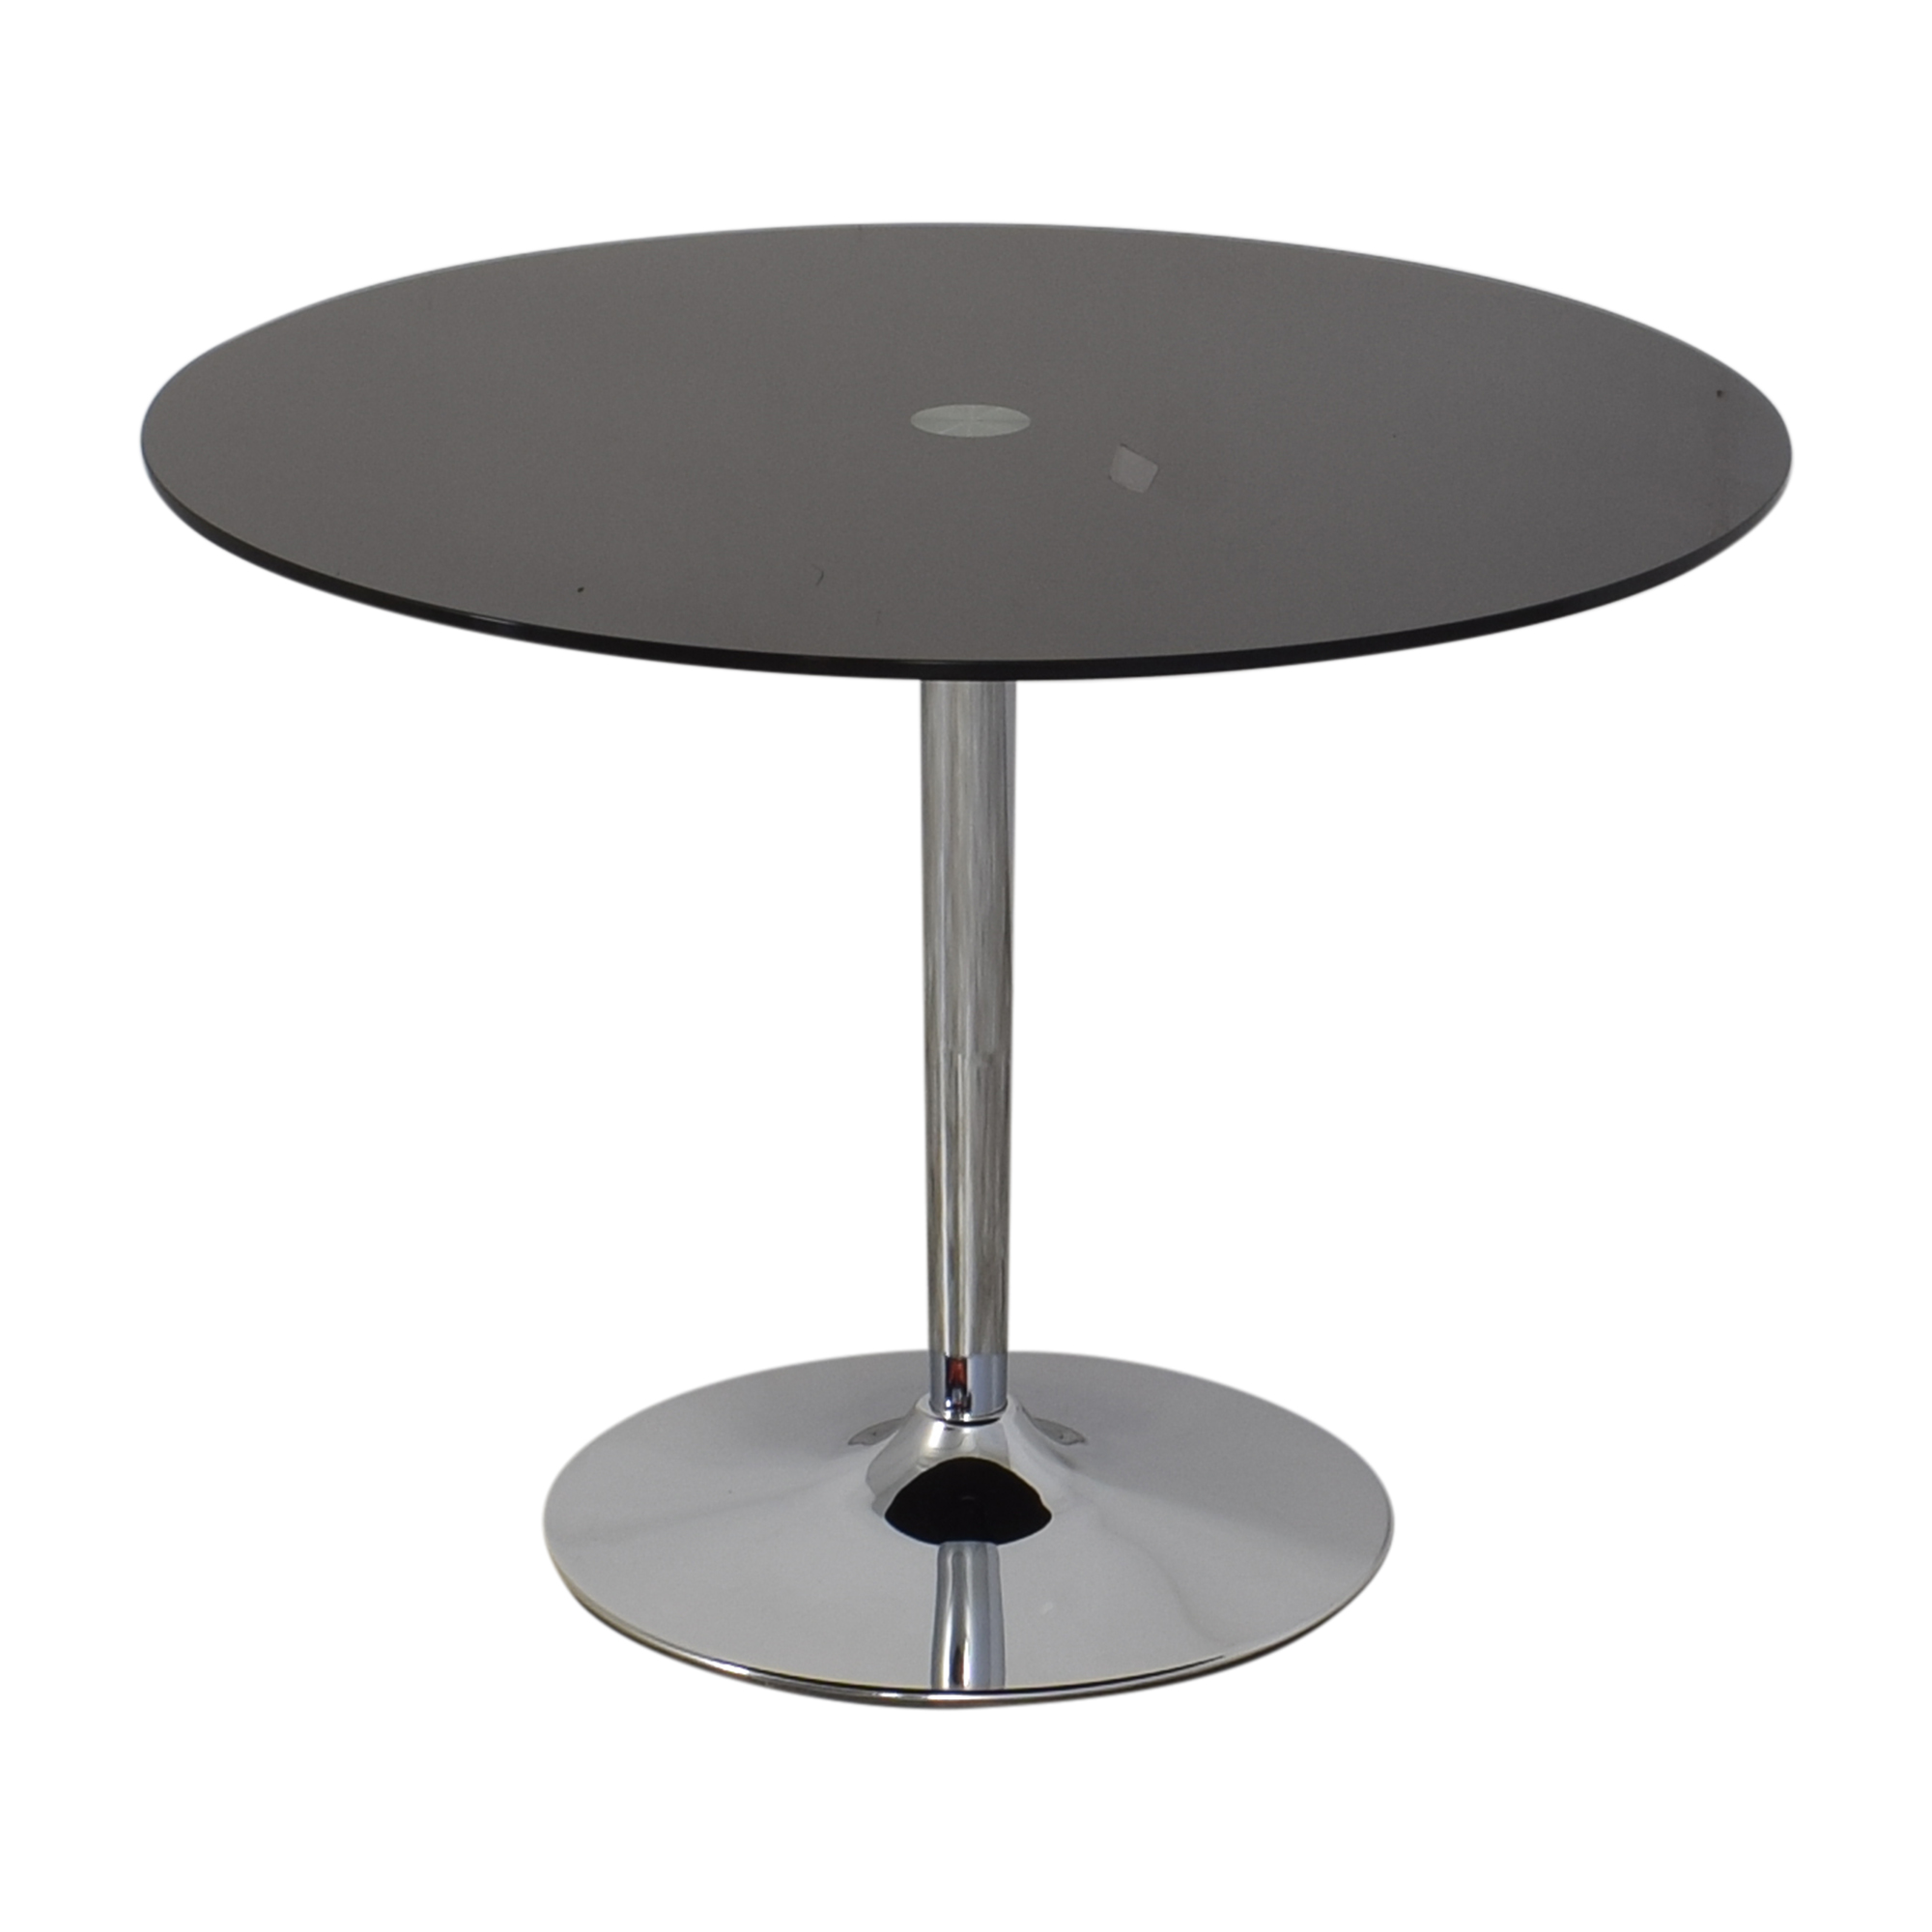 Jensen-Lewis Jensen Lewis Black Glass and Chrome Pedestal Dining Table second hand